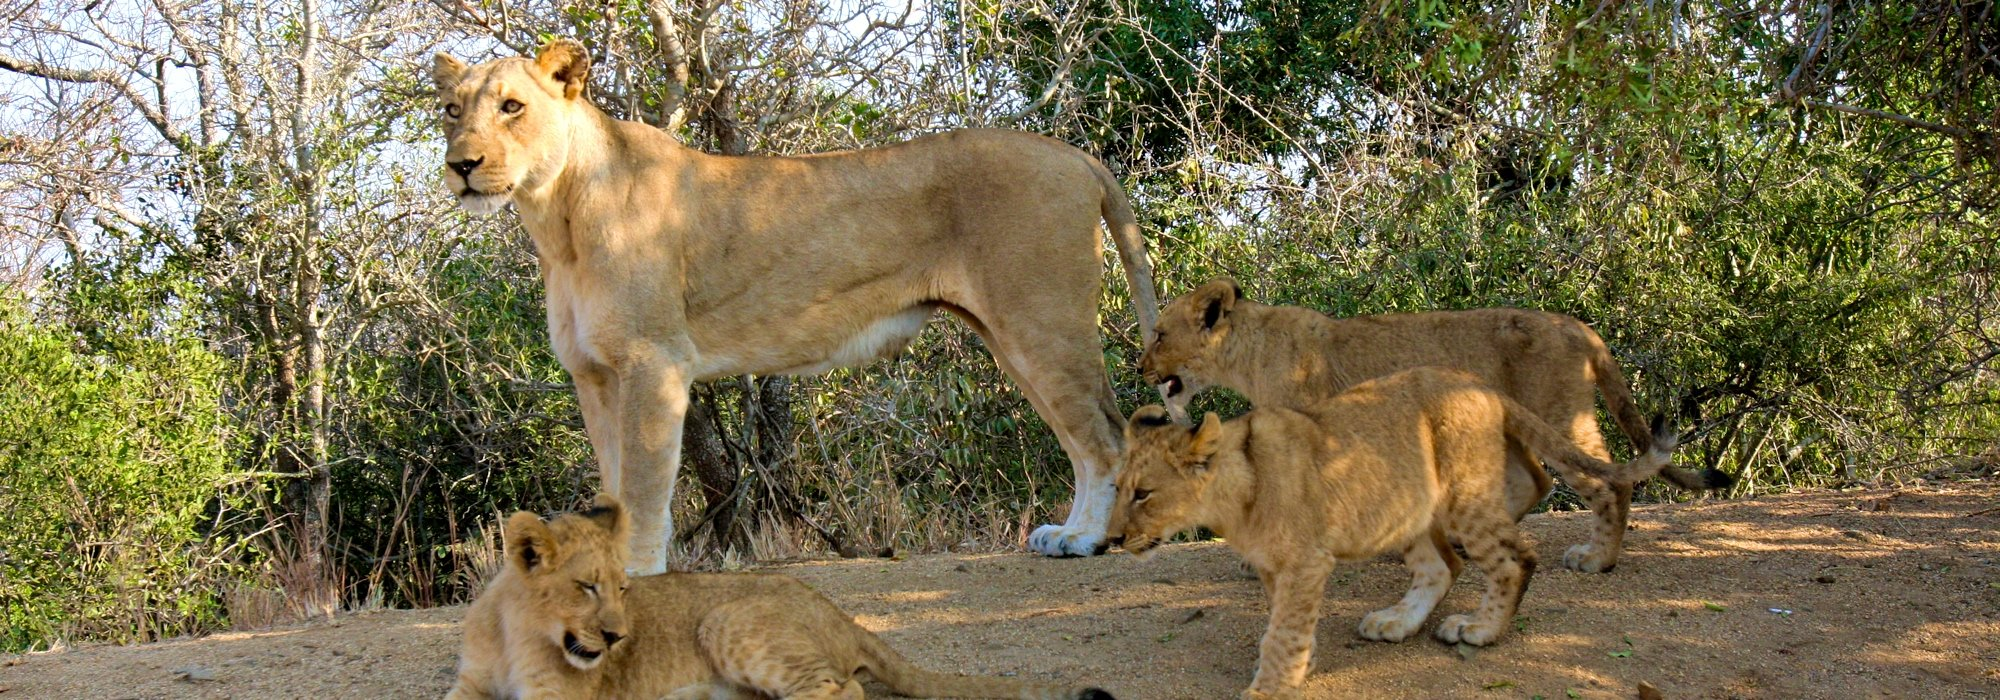 Lioness and cubs in Africa